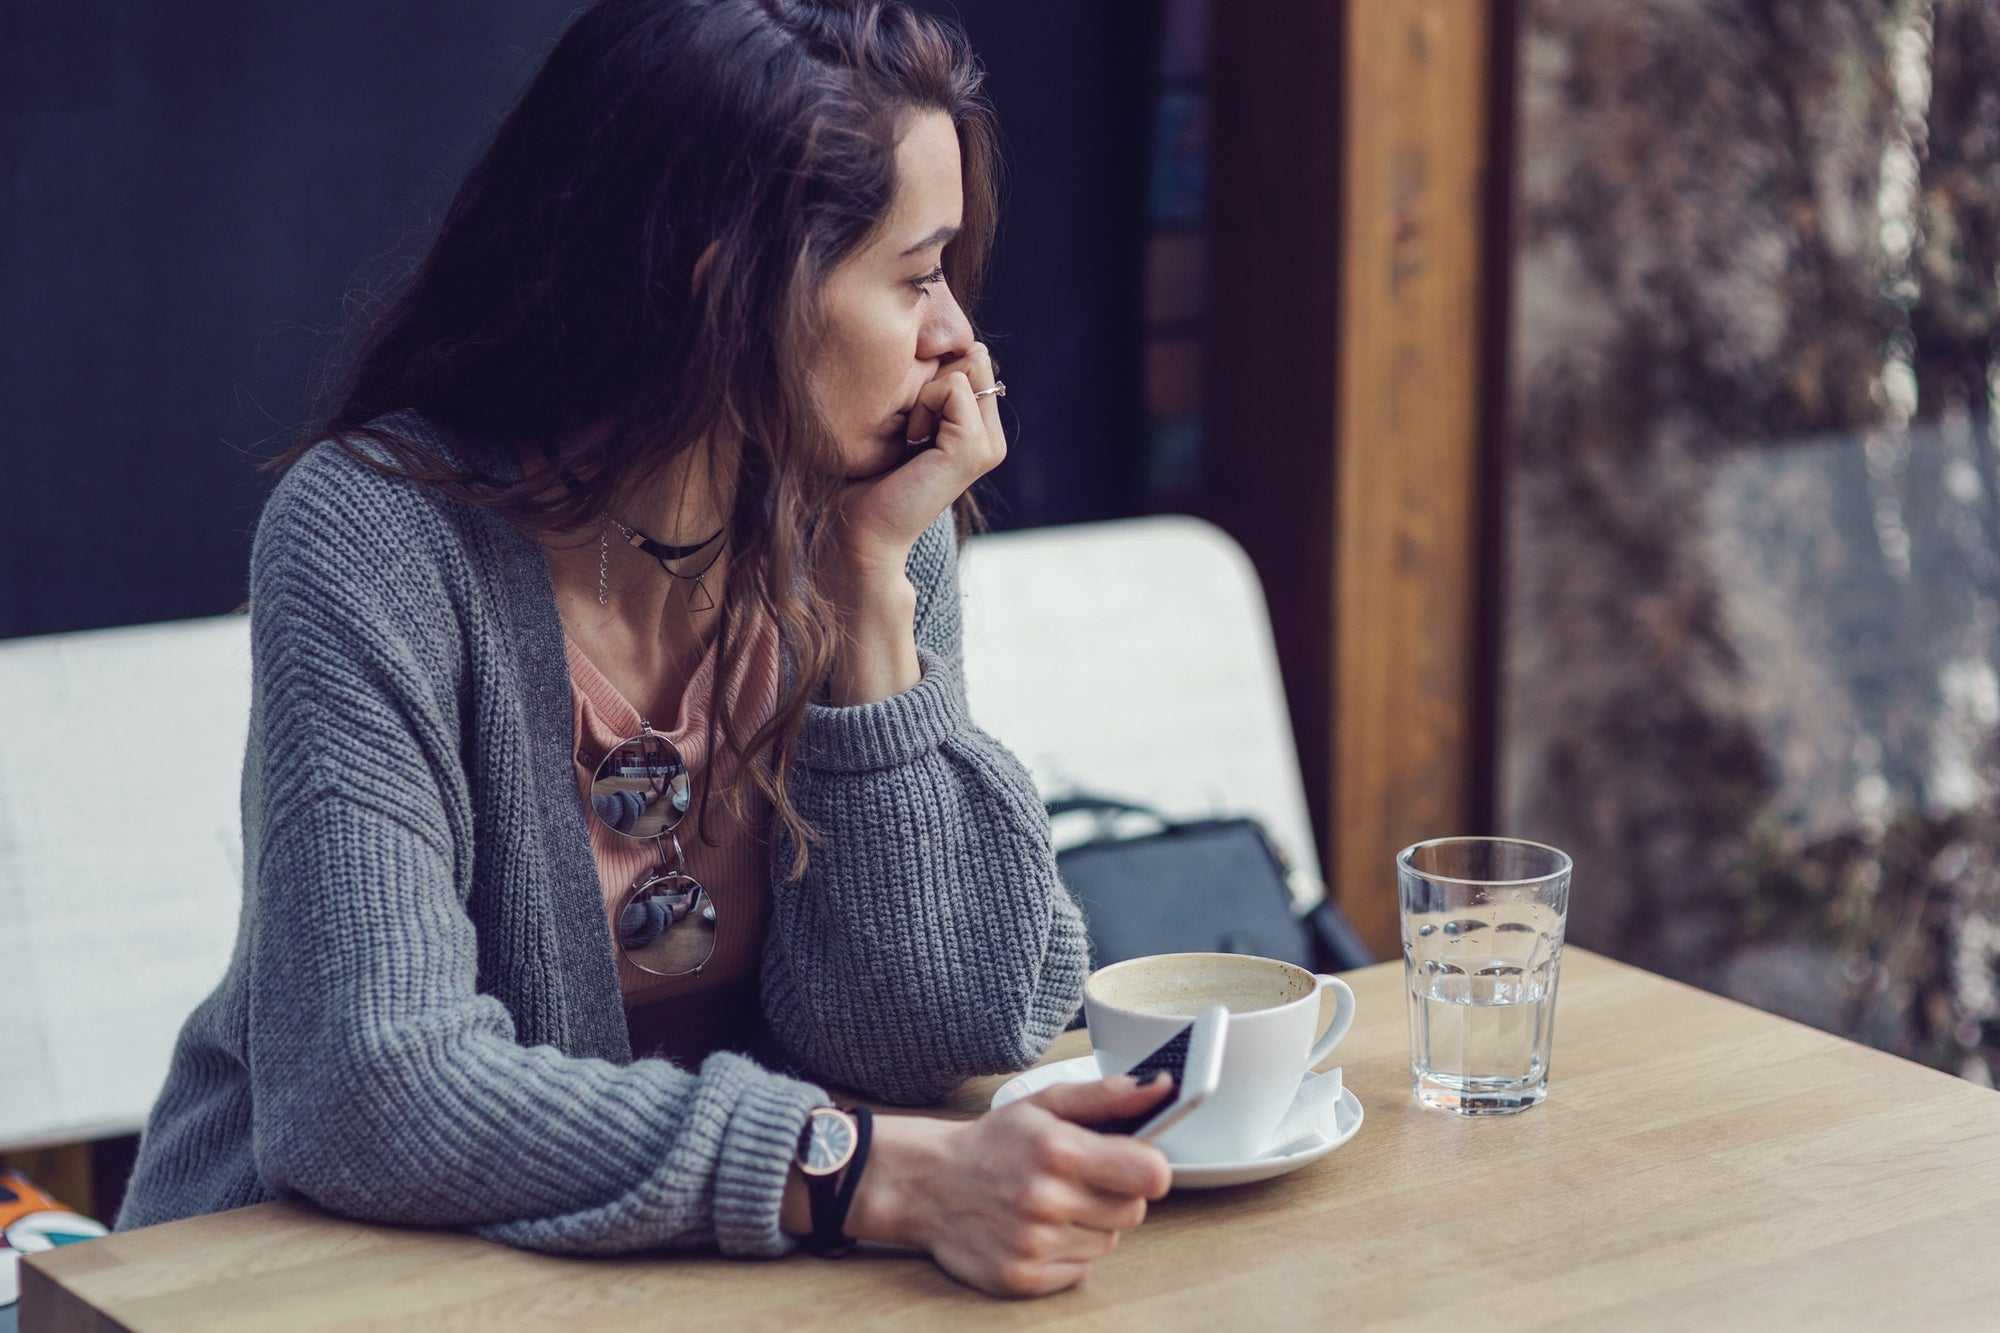 Woman sitting in a restaurant holding her mobile phone looking away